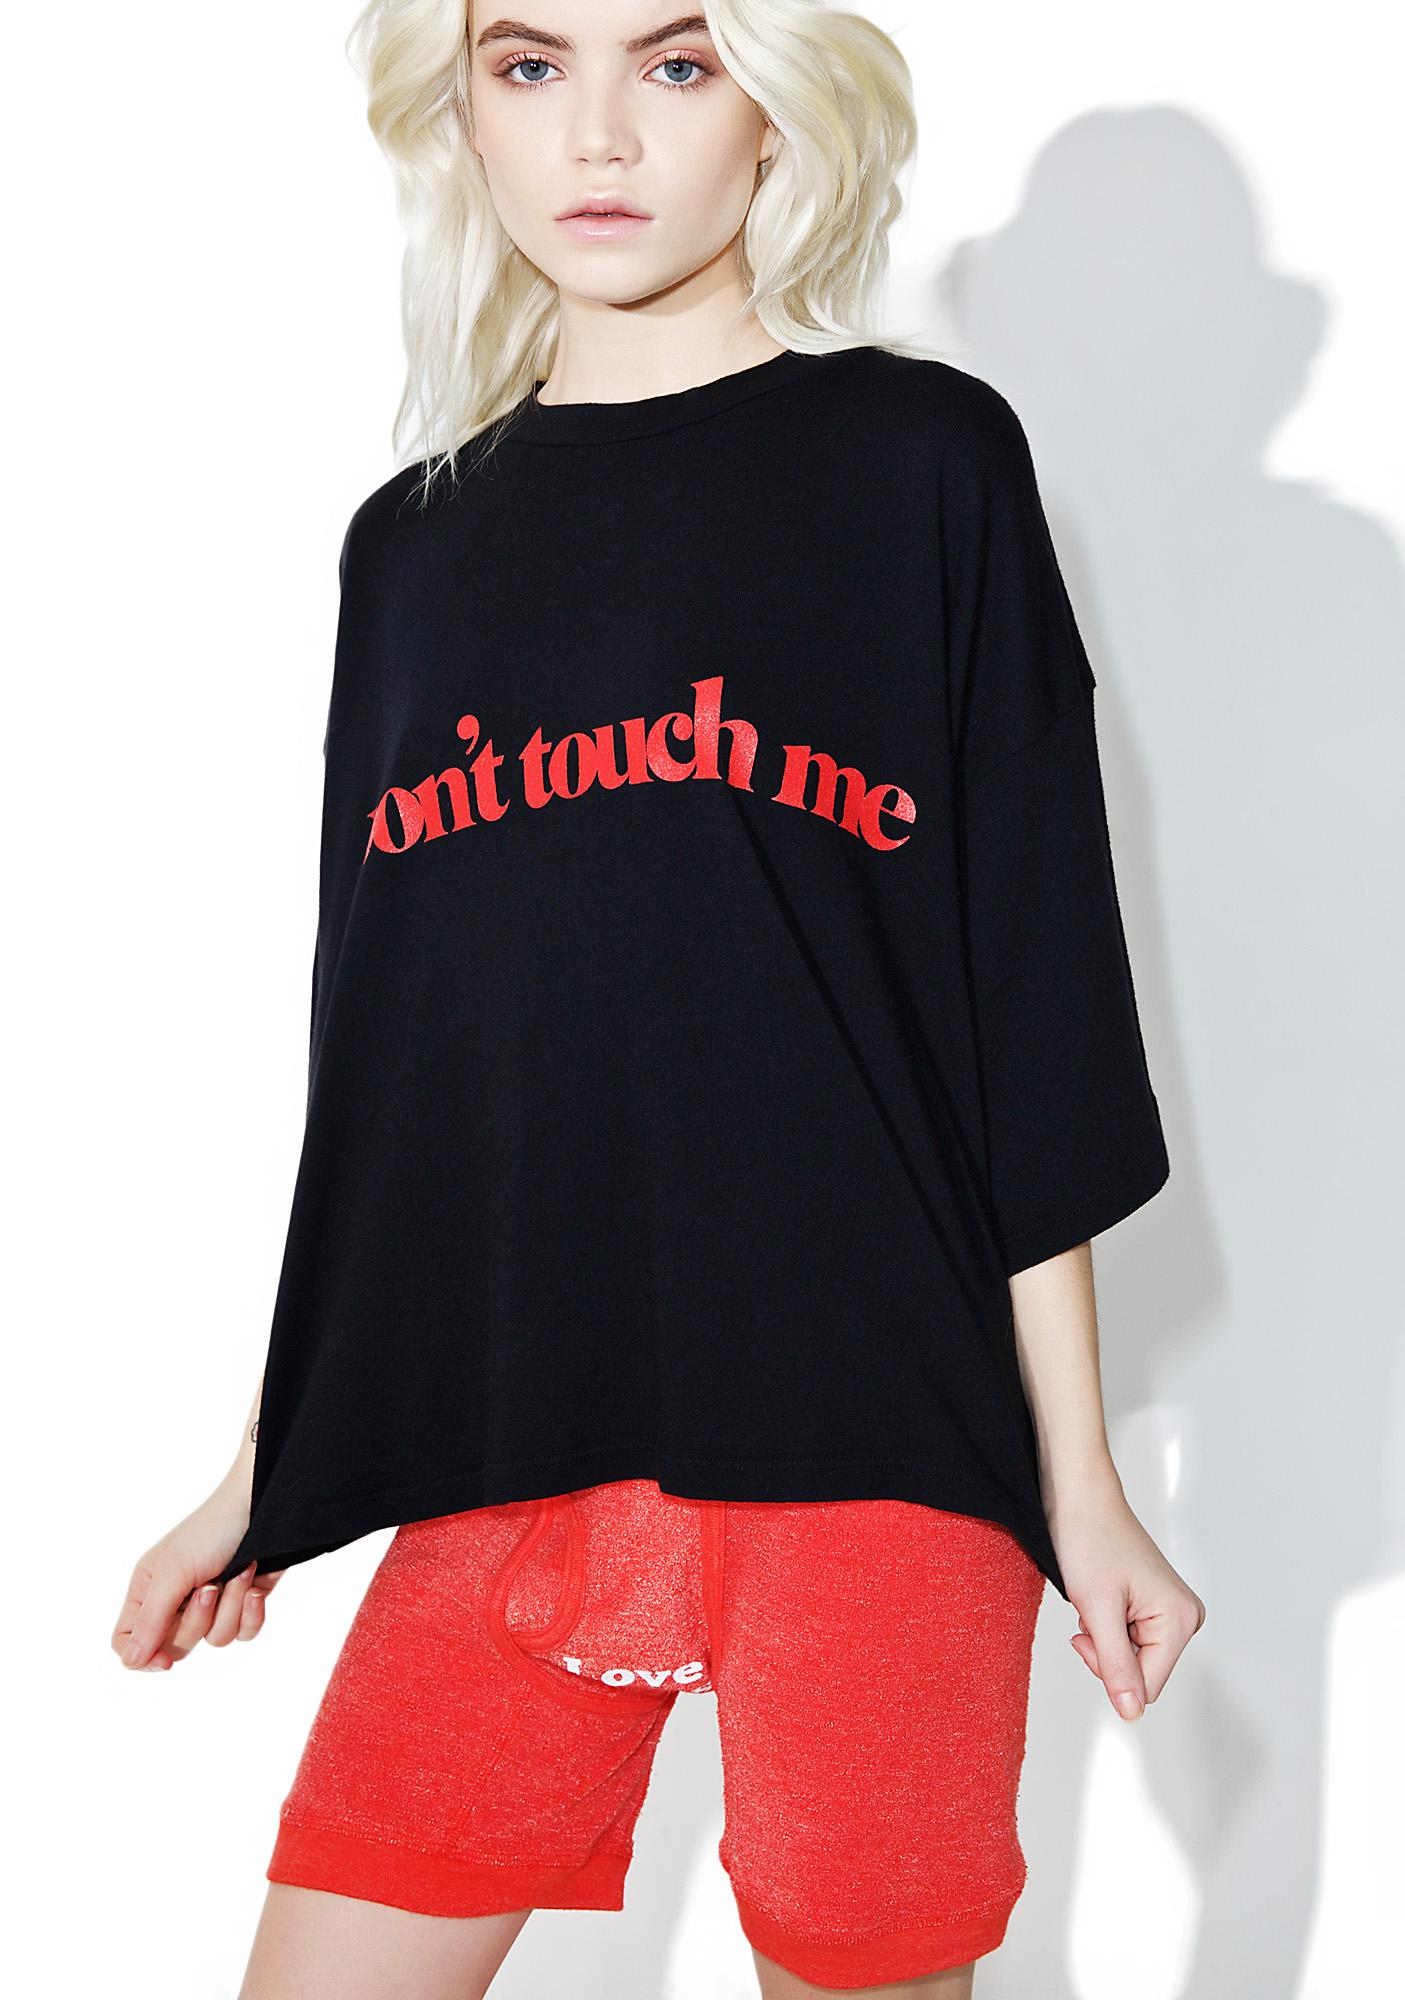 Daydream Nation Don't Touch Me Tee